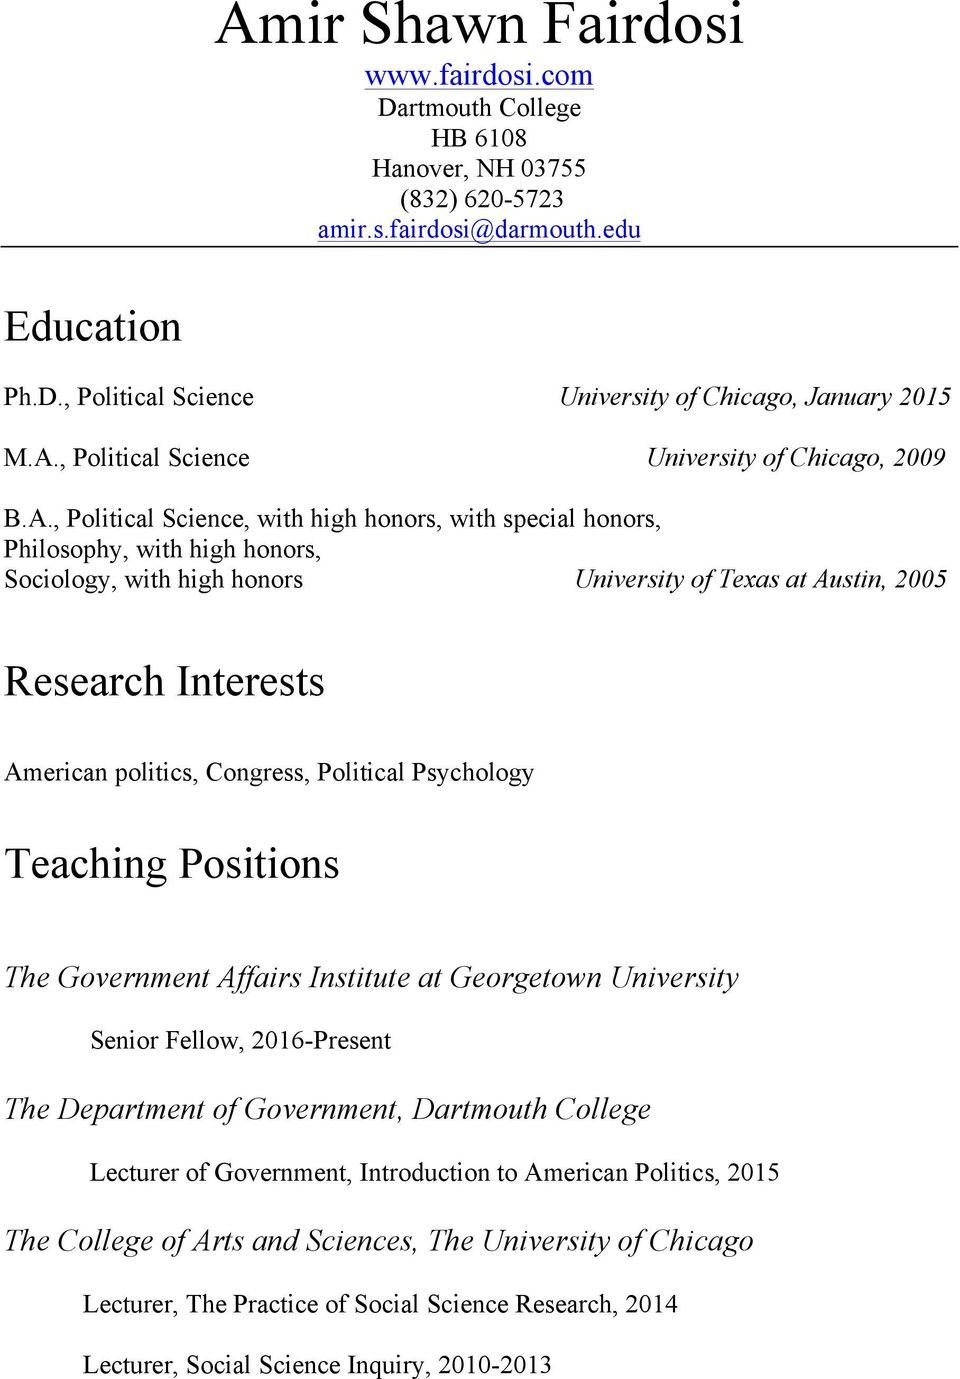 Congress, Political Psychology Teaching Positions The Government Affairs Institute at Georgetown University Senior Fellow, 2016-Present The Department of Government, Dartmouth College Lecturer of